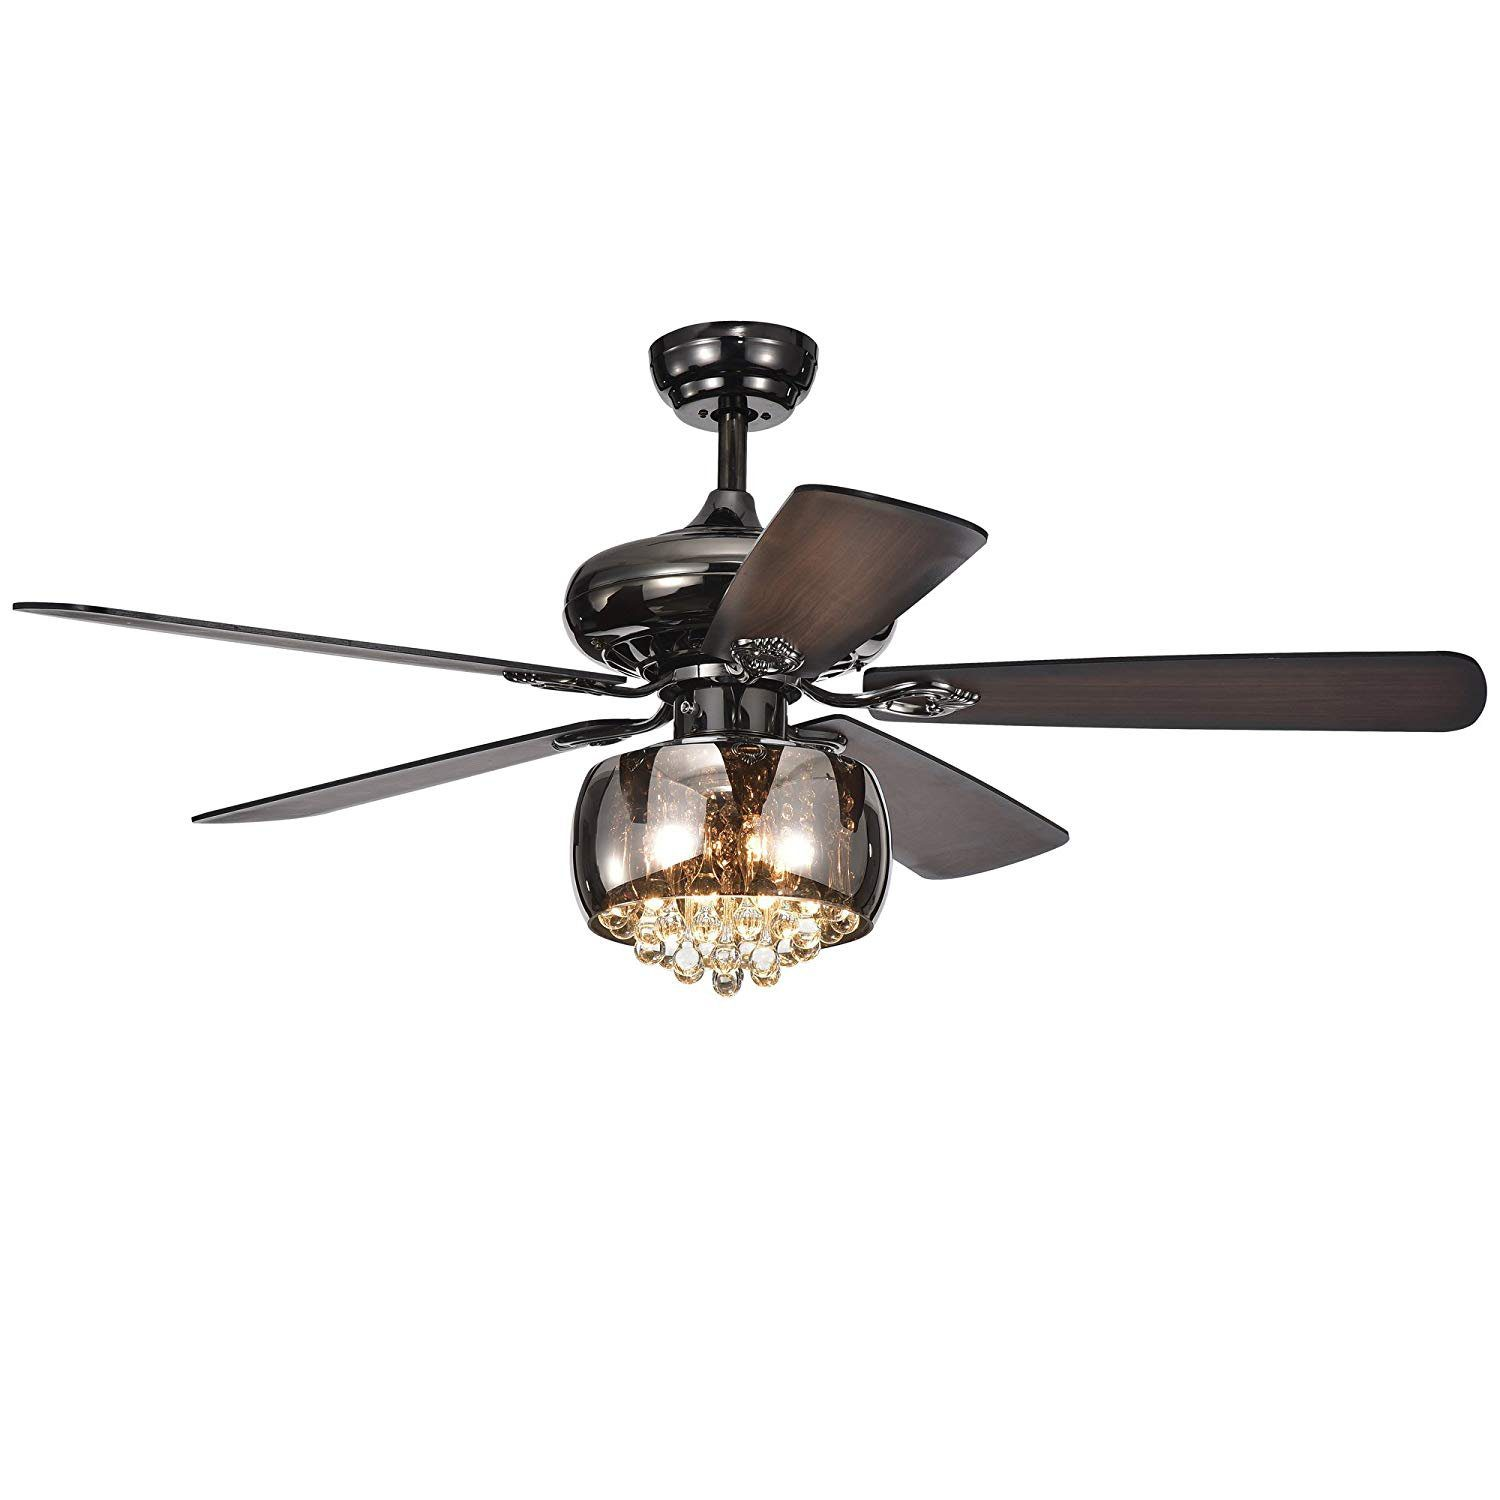 RainierLight 52 inch Modern Crystal Ceiling Fan